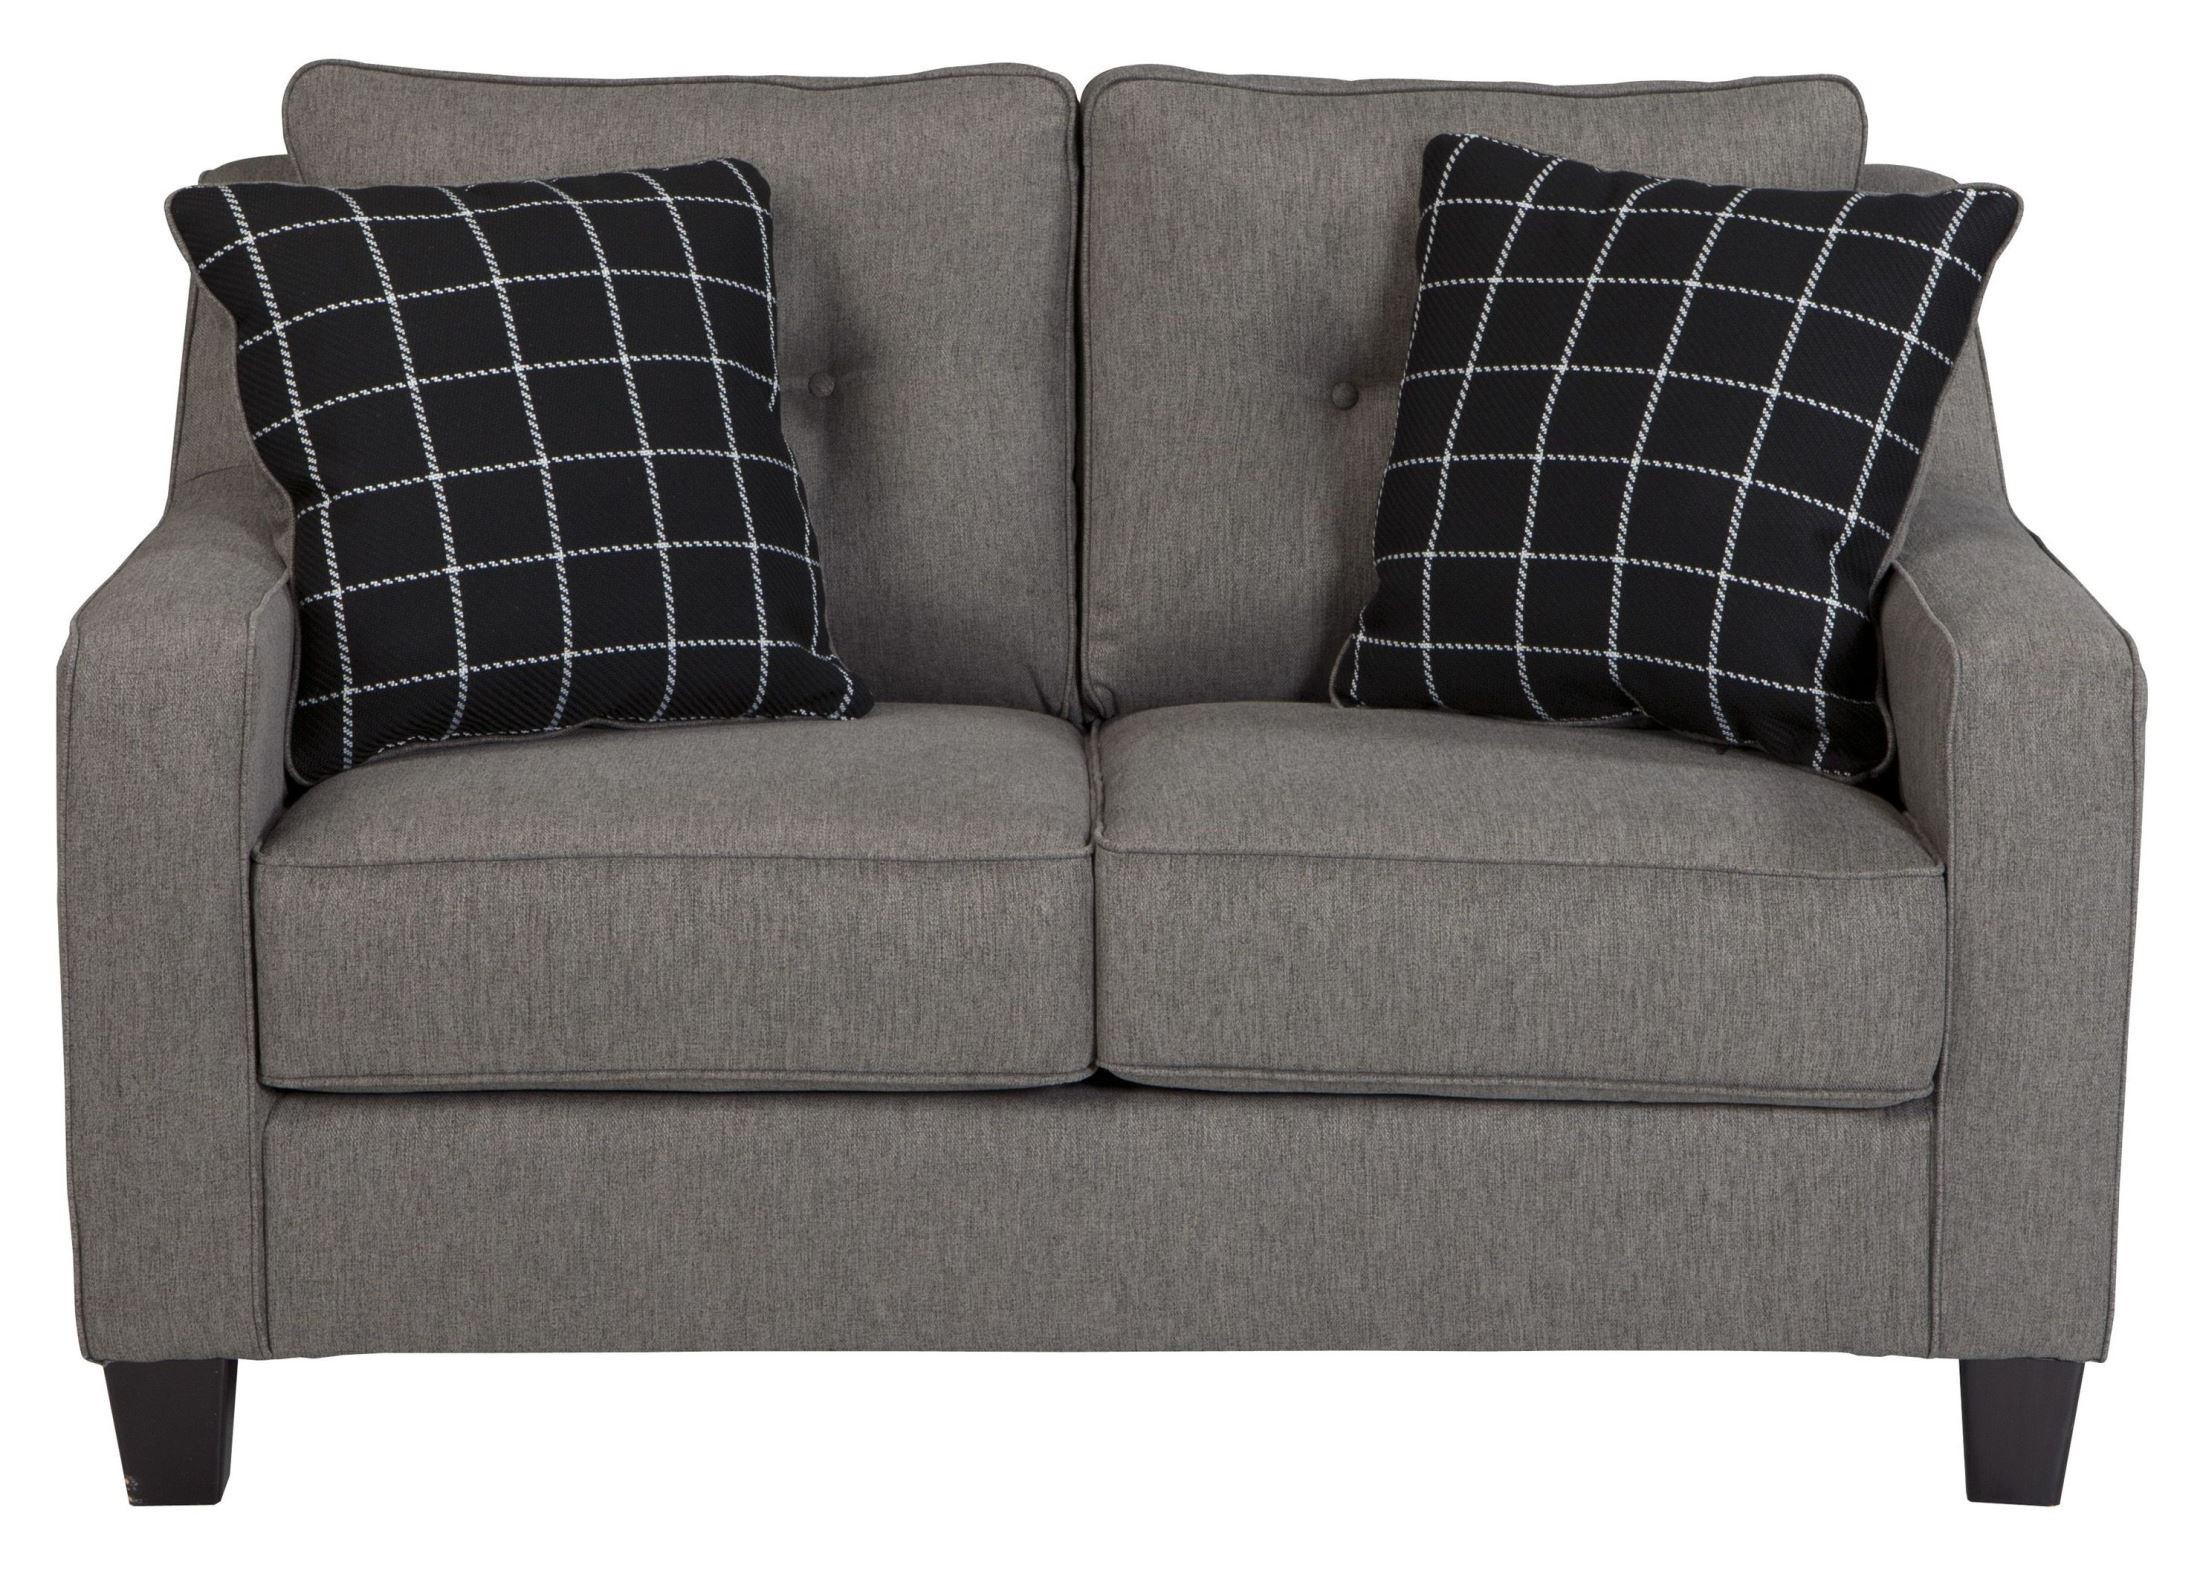 Brindon Charcoal Loveseat From Ashley 5390135 Coleman Furniture